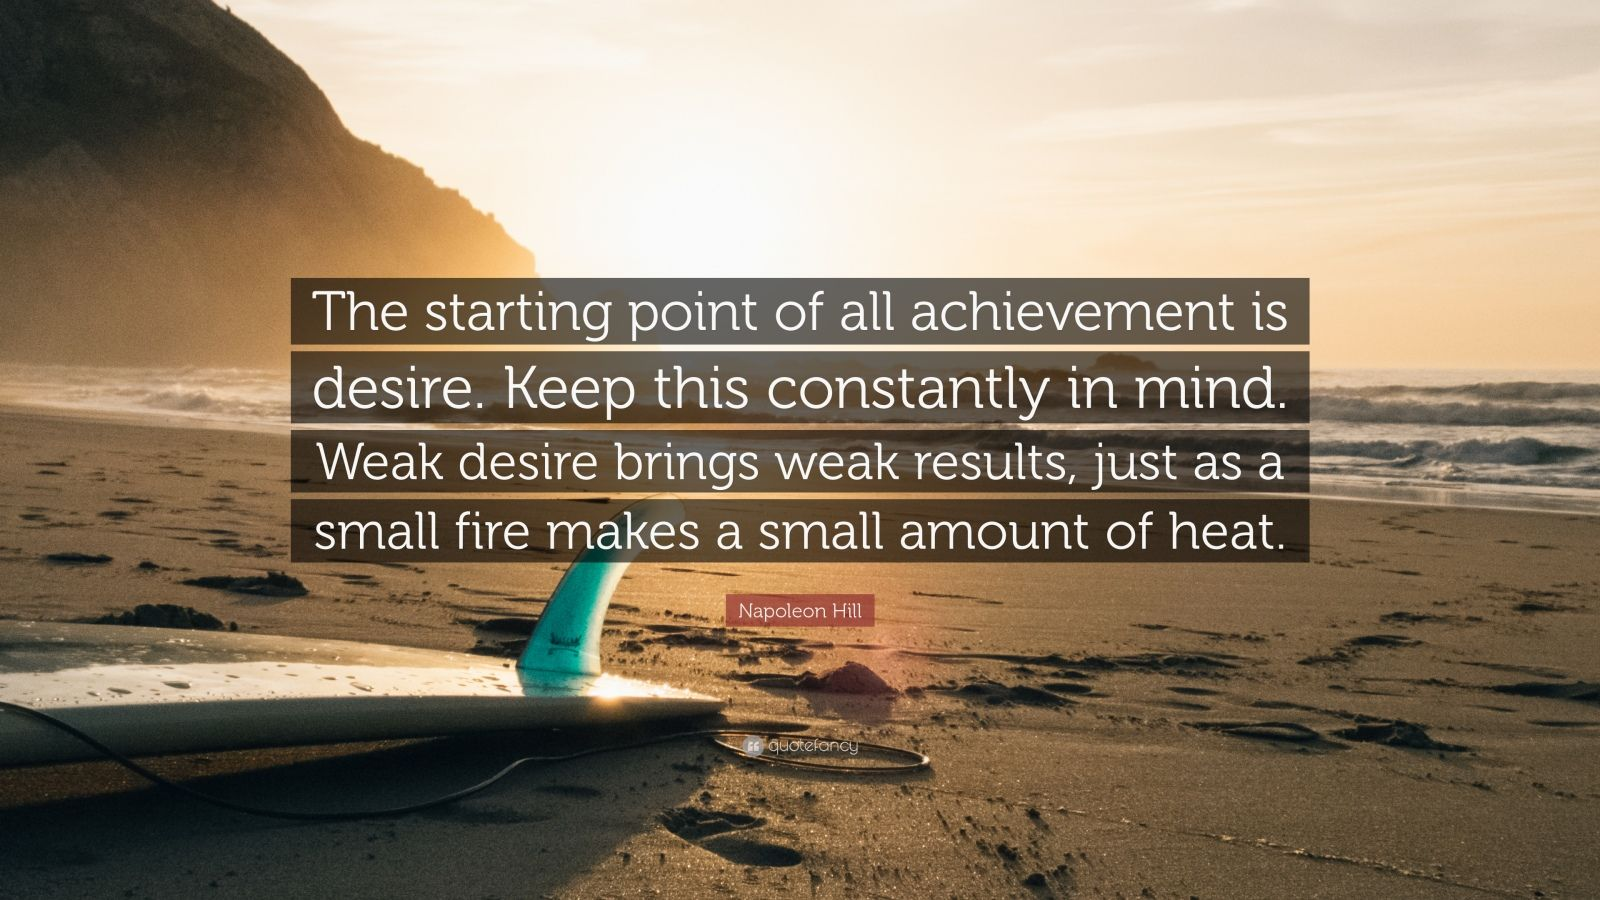 """Napoleon Hill Quote: """"The starting point of all achievement is desire. Keep this constantly in mind. Weak desire brings weak results, just as a small fire makes a small amount of heat."""""""